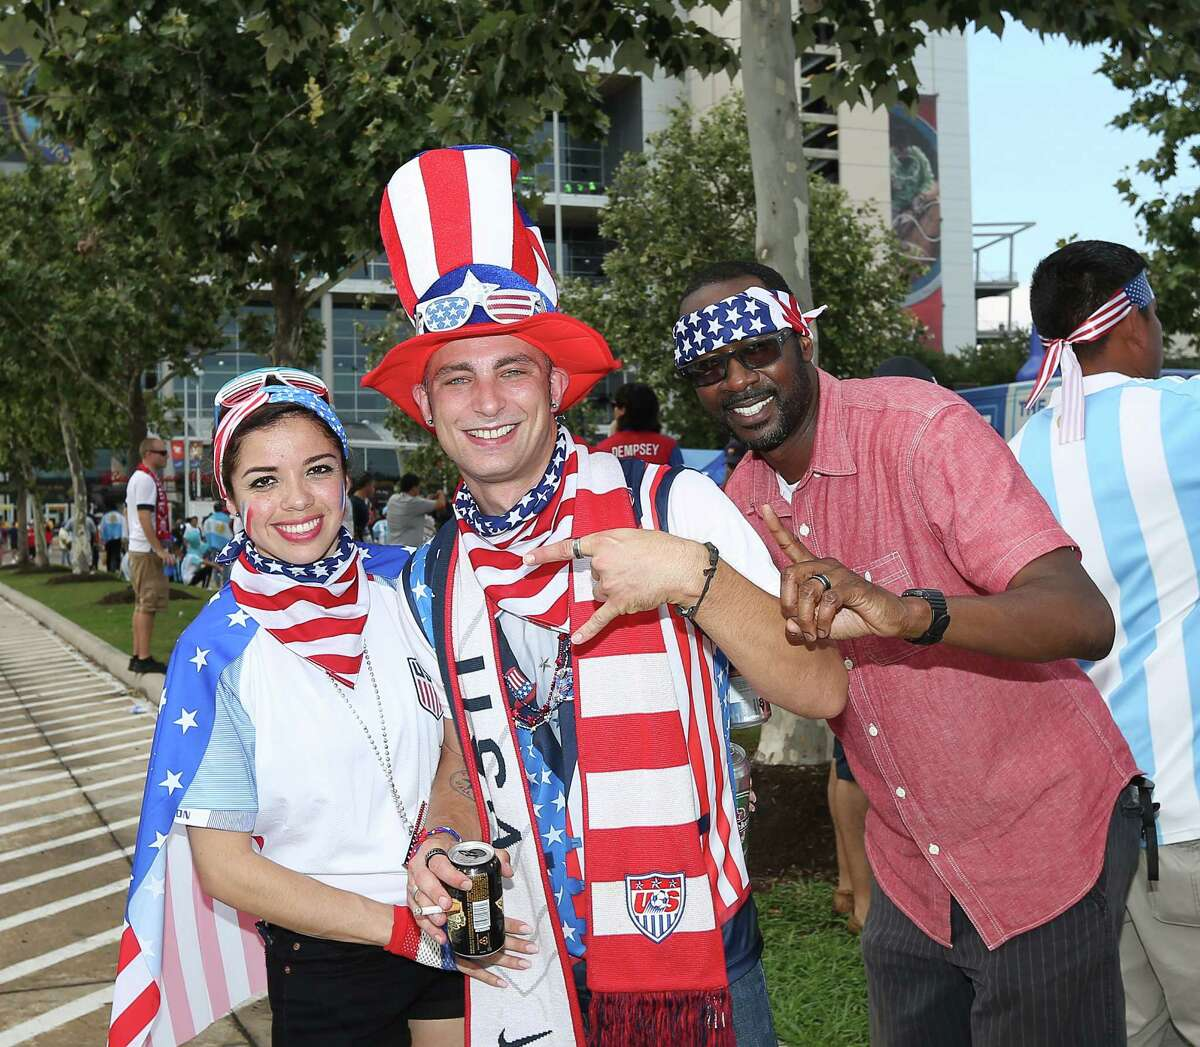 People pose for a photo before COPA semi-final game at NRG Stadium, Tuesday, June 21, 2016, in Houston.